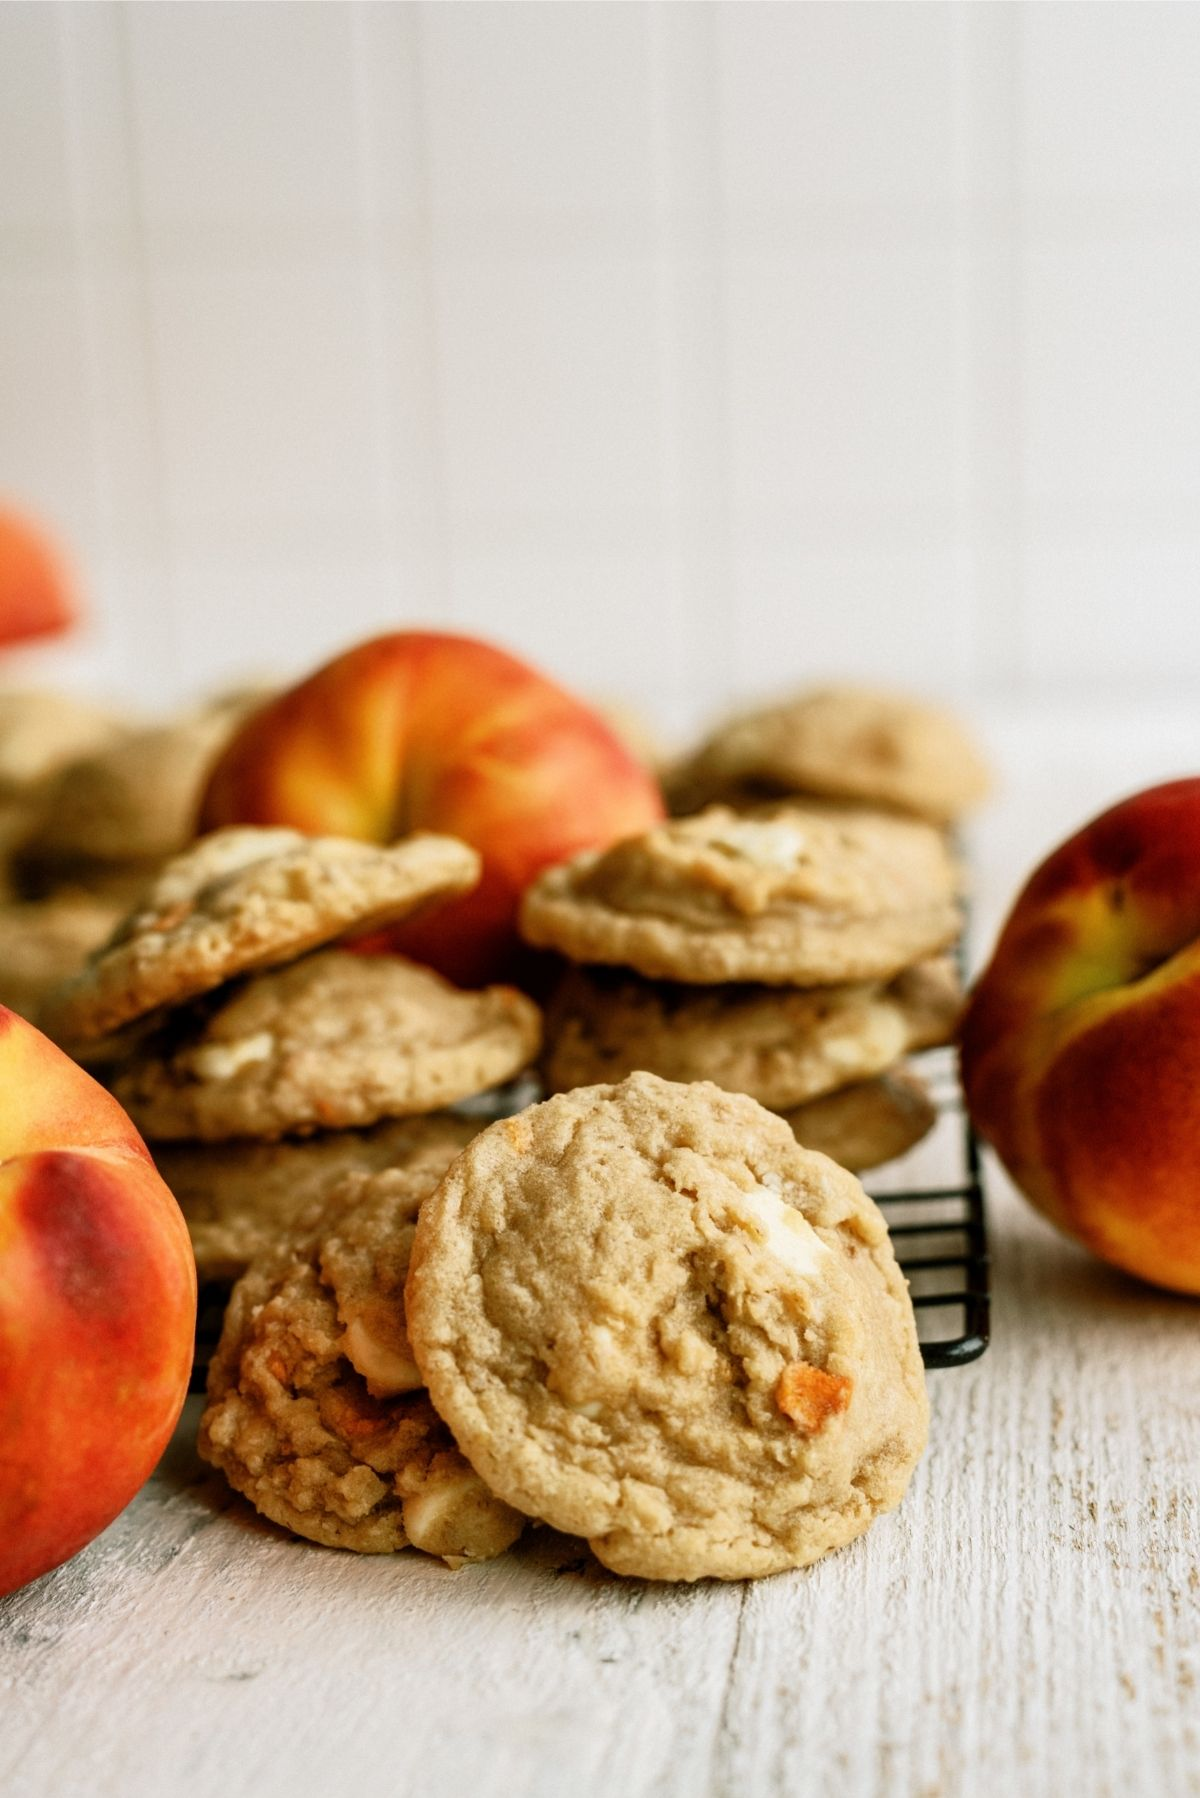 Peaches and Cream Oatmeal Cookies on cooling rack surrounded by fresh pizza